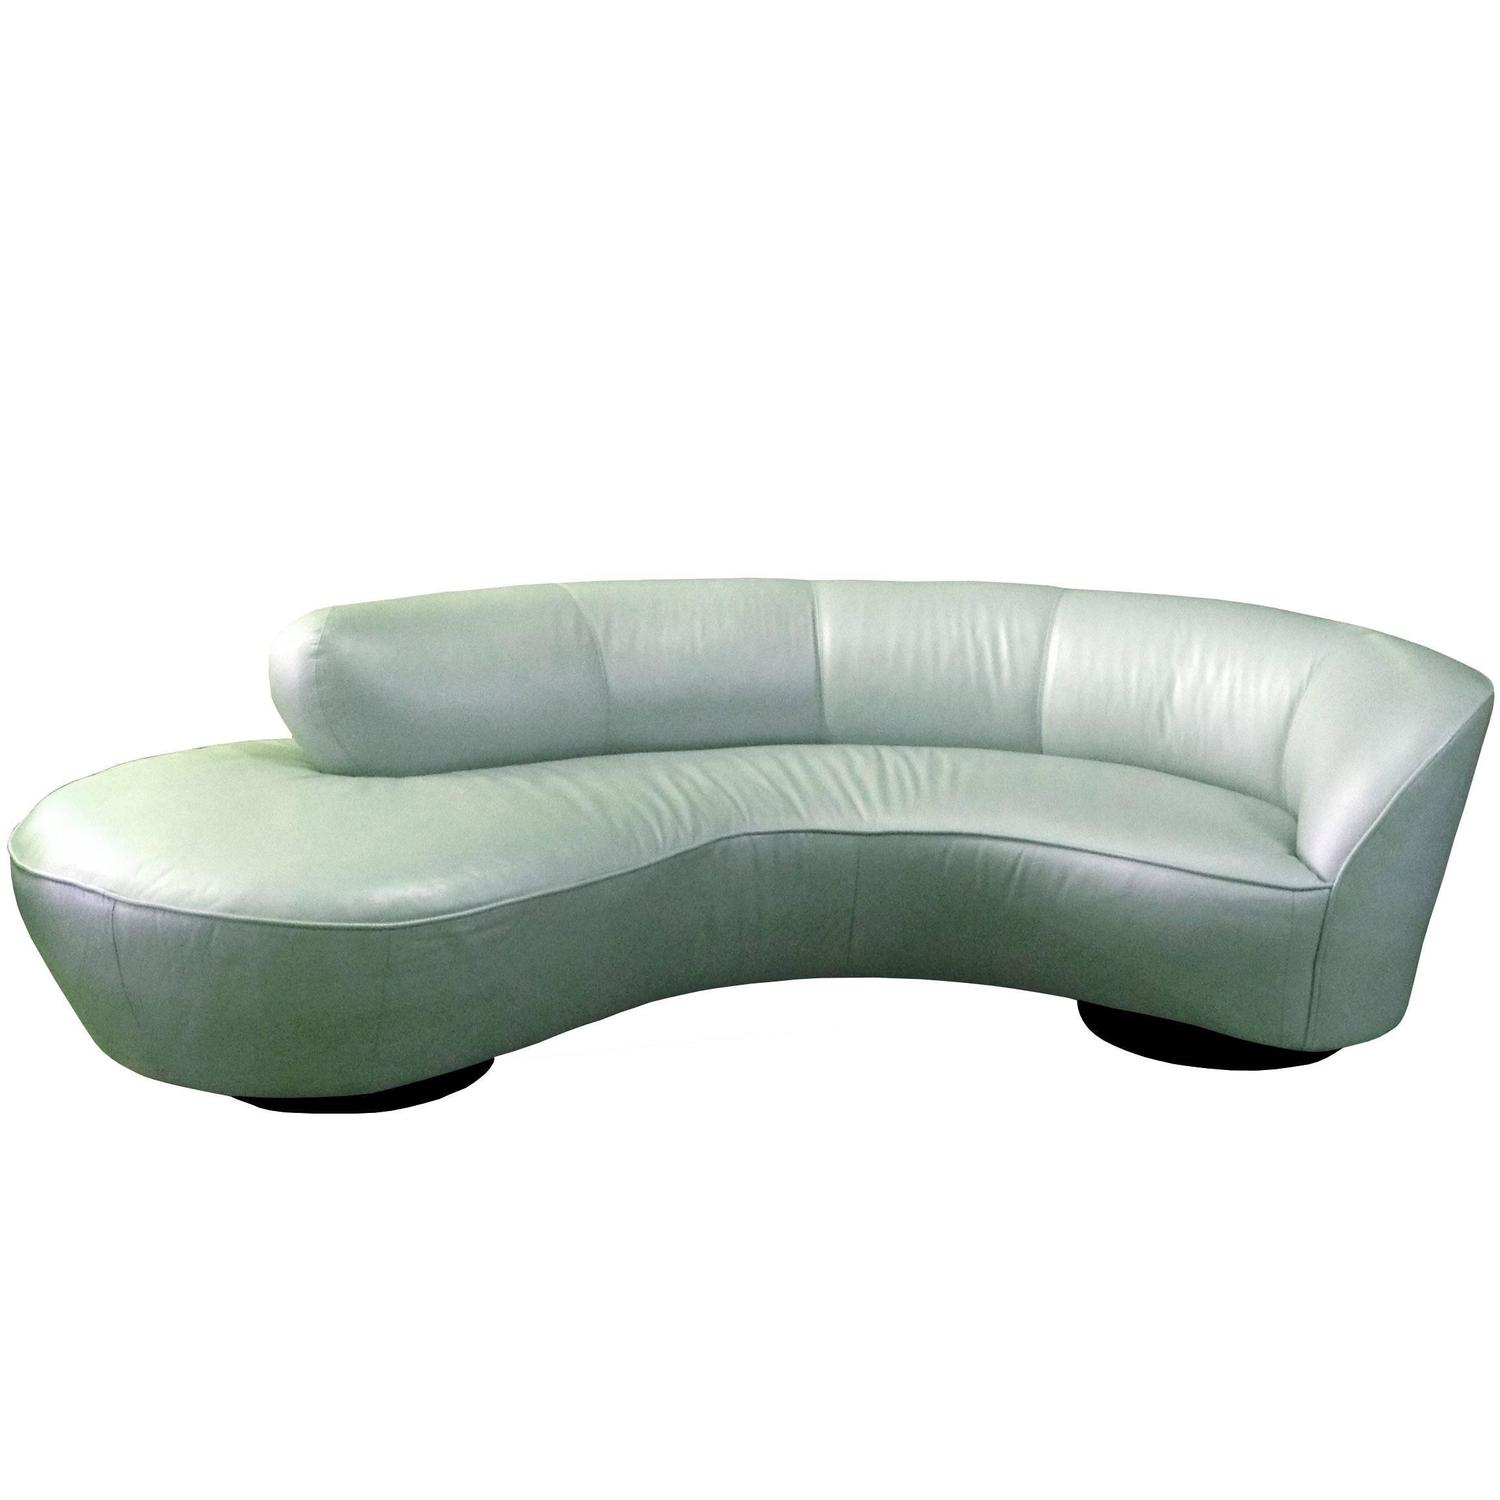 Beau Vladimir Kagan Serpentine Sofa And Ottoman Upholstered In Edelman Leather  For Sale At 1stdibs